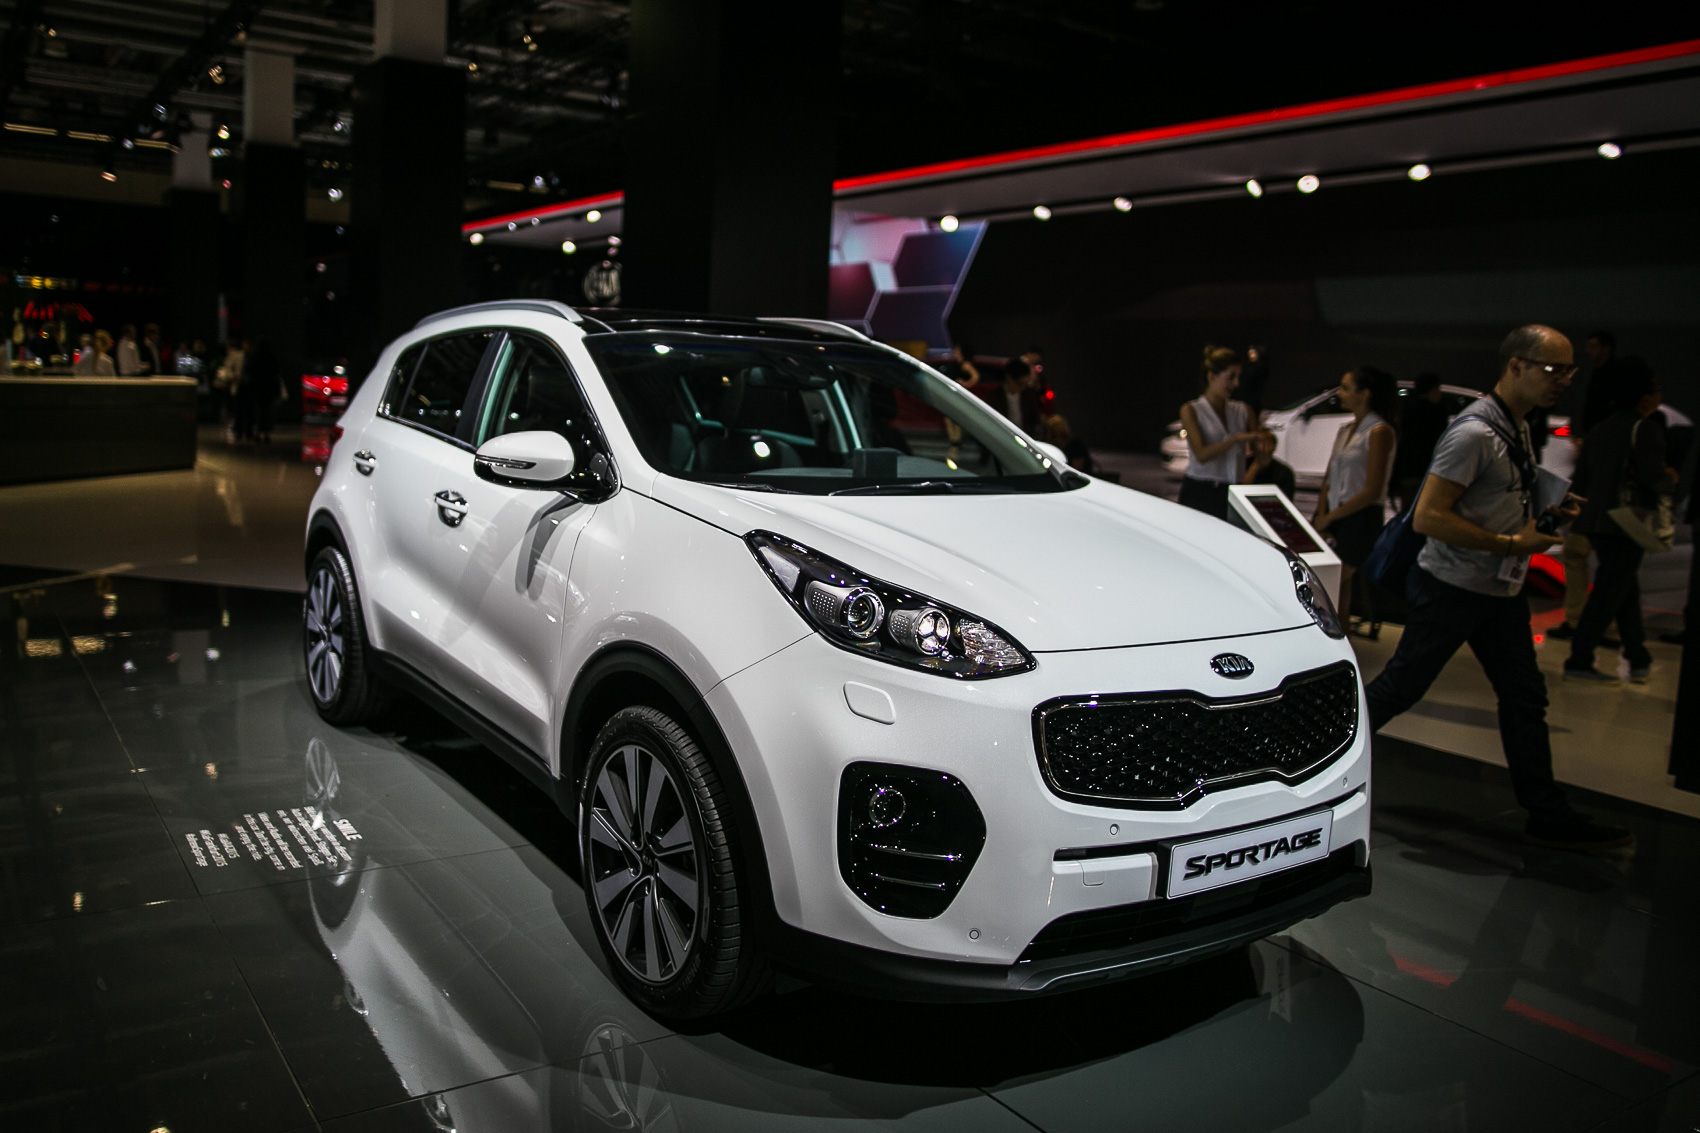 2017 kia sportage shows its new face at the frankfurt motor show news. Black Bedroom Furniture Sets. Home Design Ideas